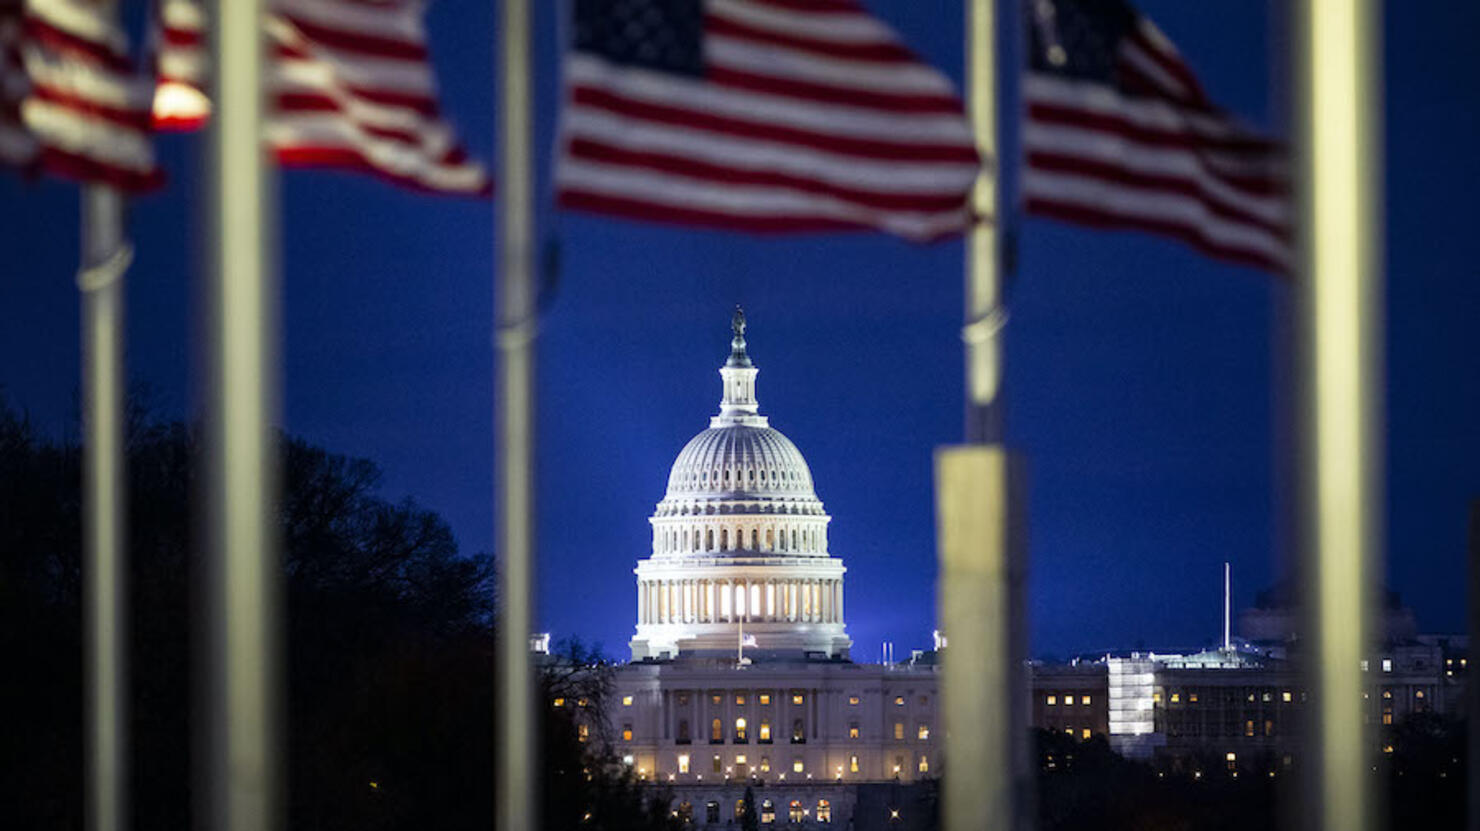 The U.S. Capitol is seen through American flags flying at half staff